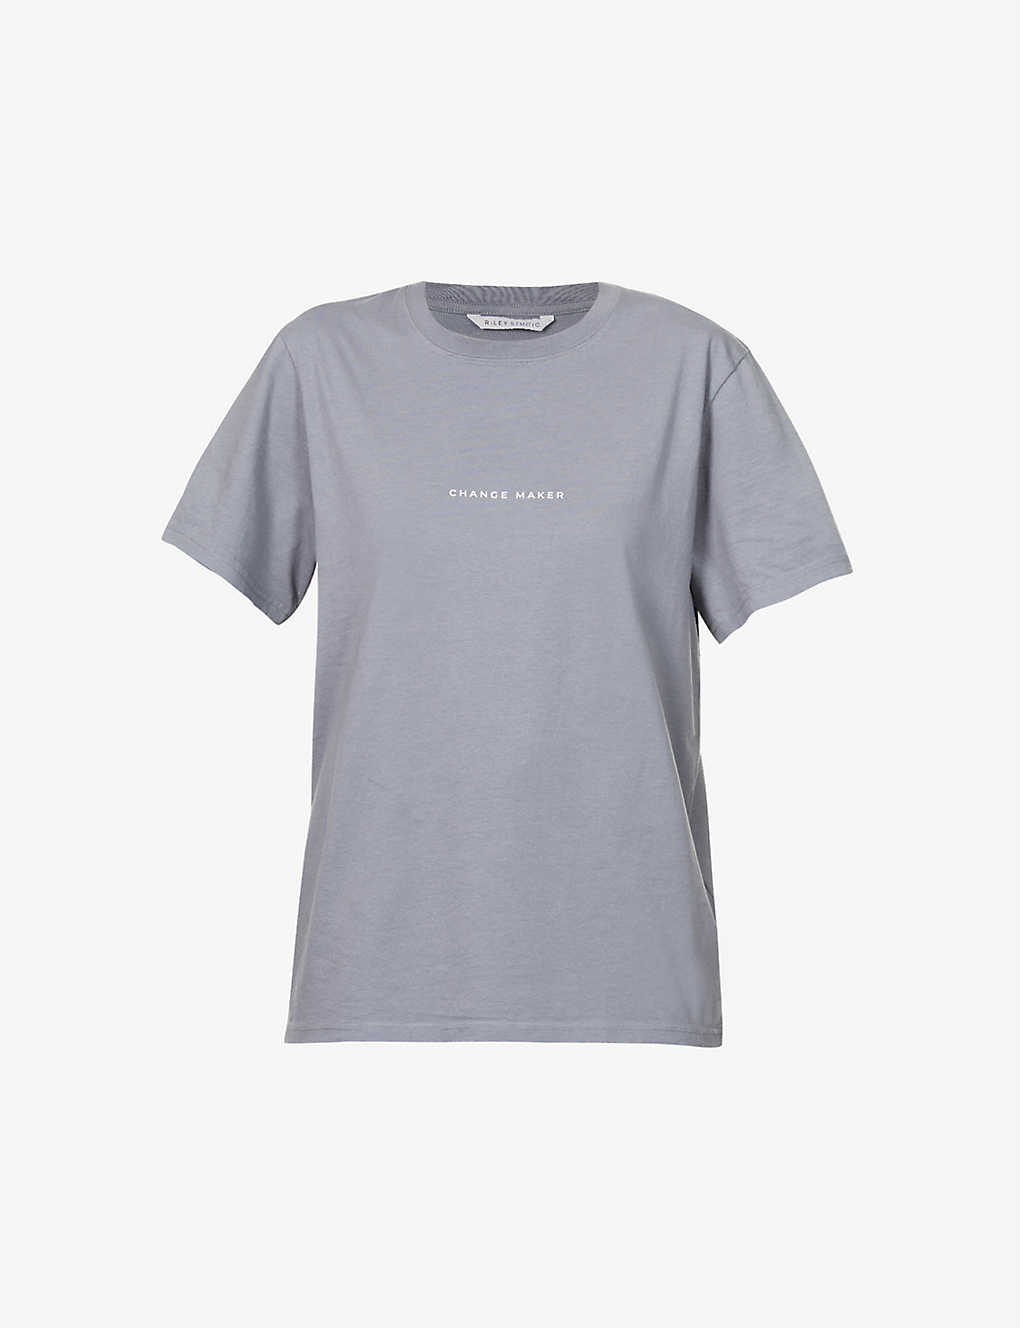 Change Maker organic and recycled cotton-blend T-shirt